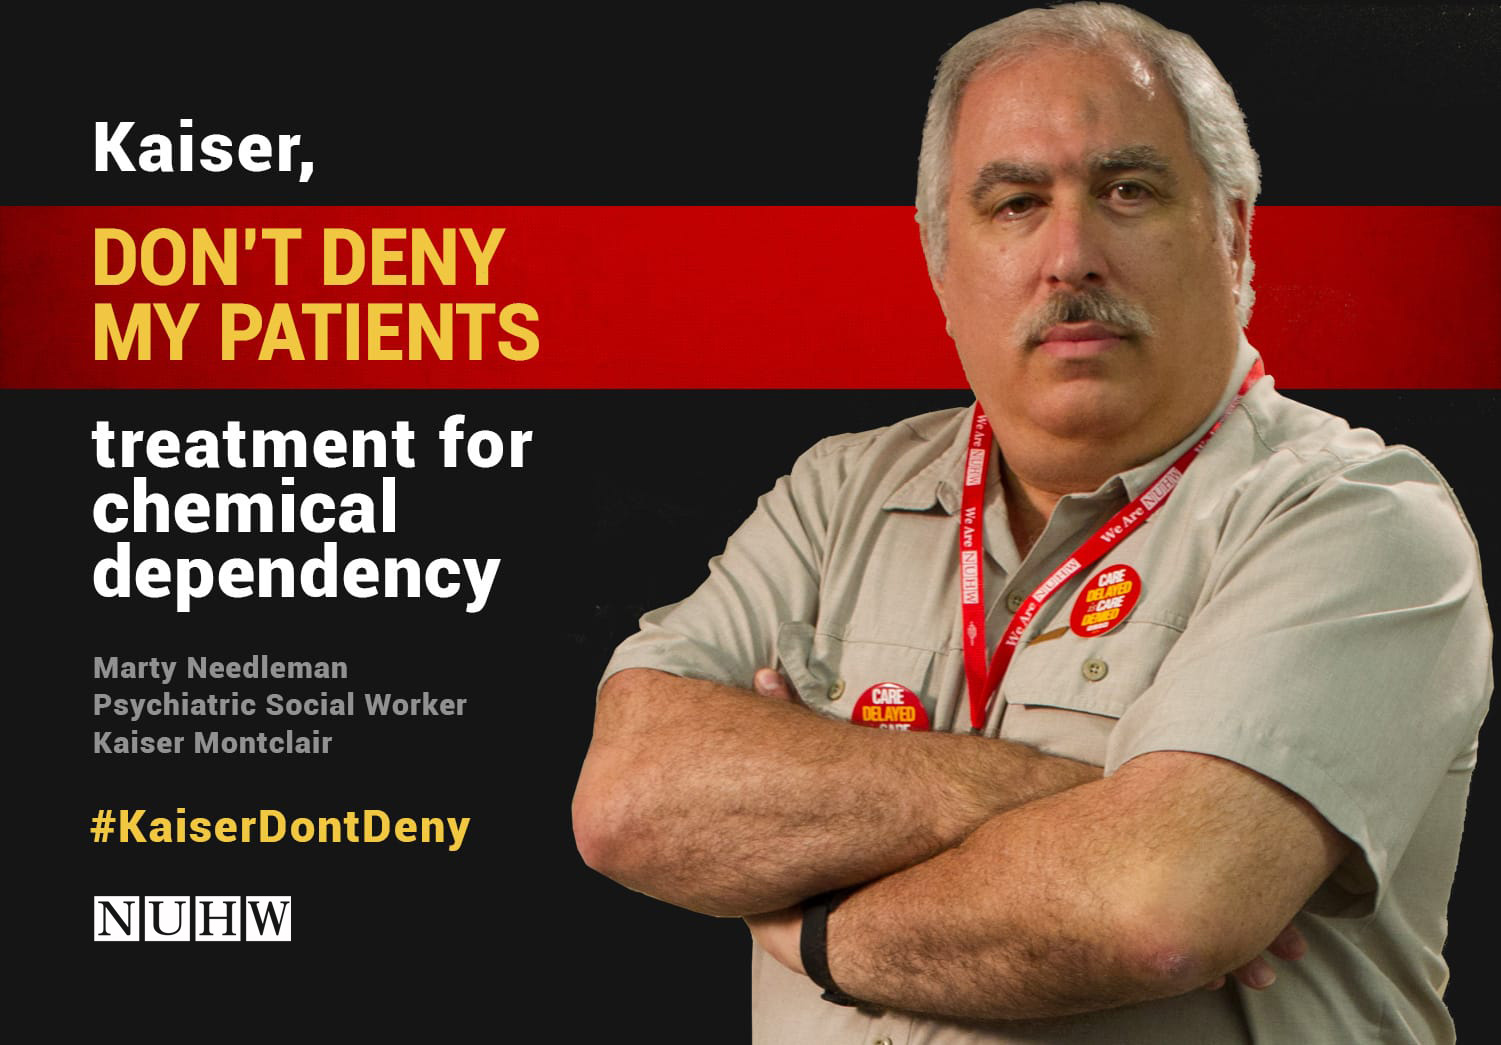 Kaiser, don't deny my patients treatment for chemical dependency. -- Marty Needleman, Psychiatric Social Worker, Kaiser Montclair